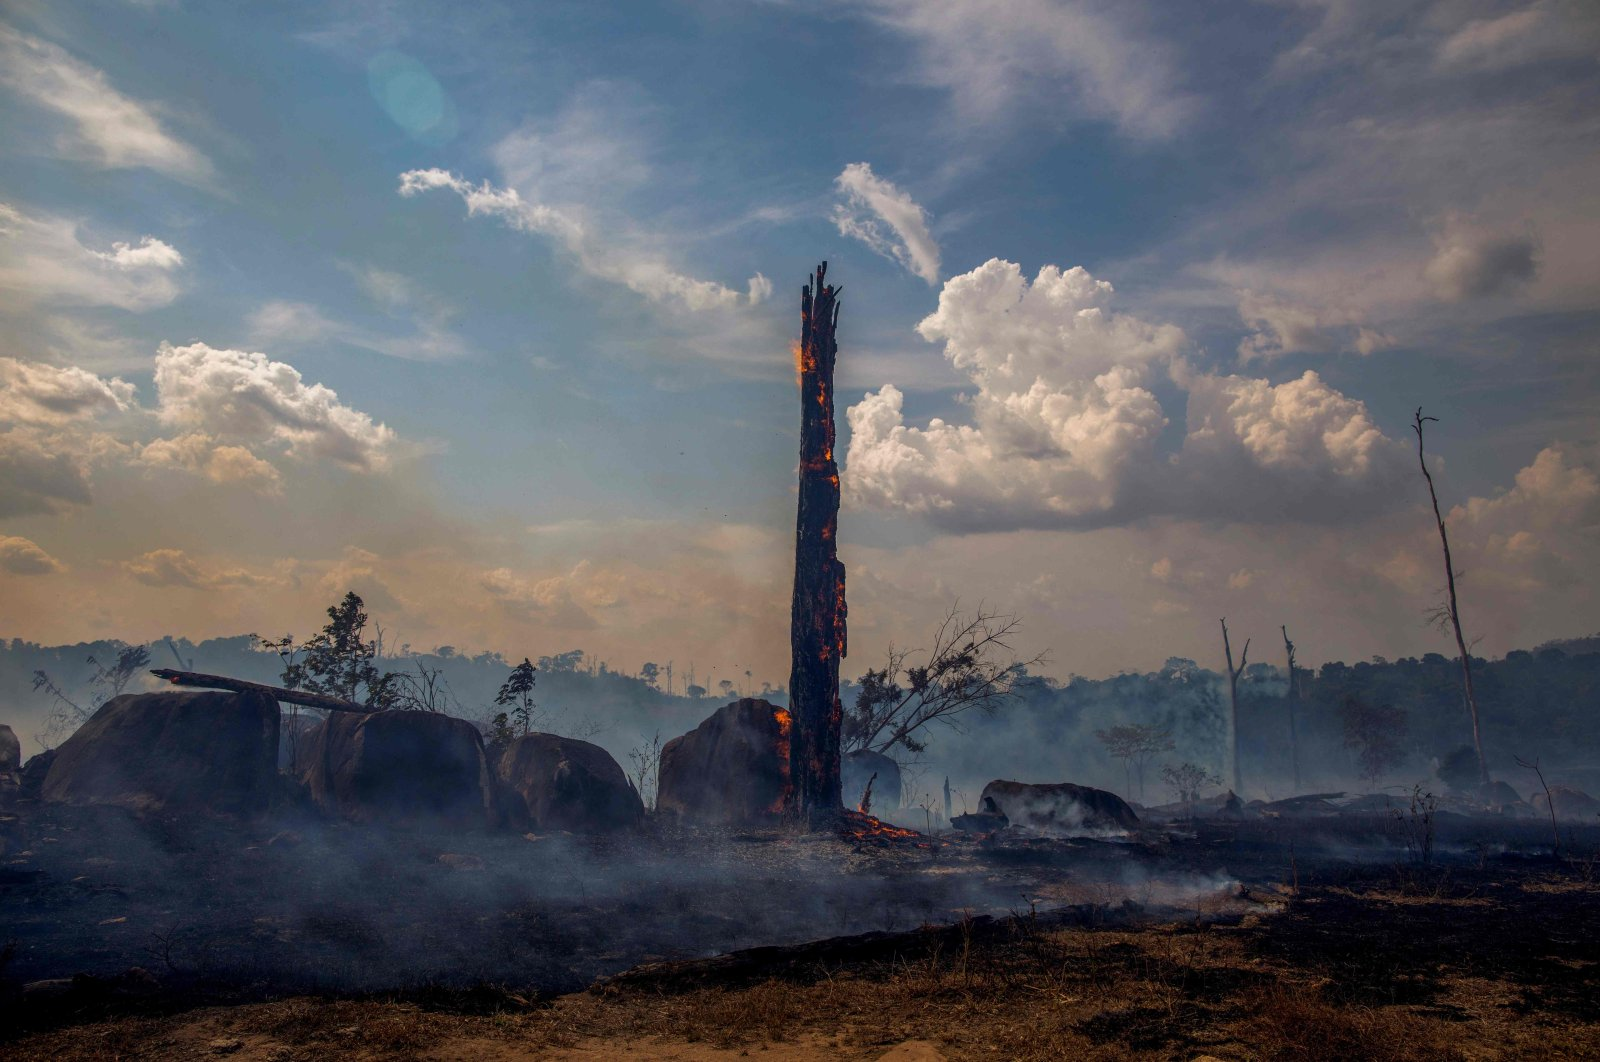 A burnt area of forest in the Amazon basin, Altamira, Para state, Brazil, Aug. 28, 2019. (AFP Photo)